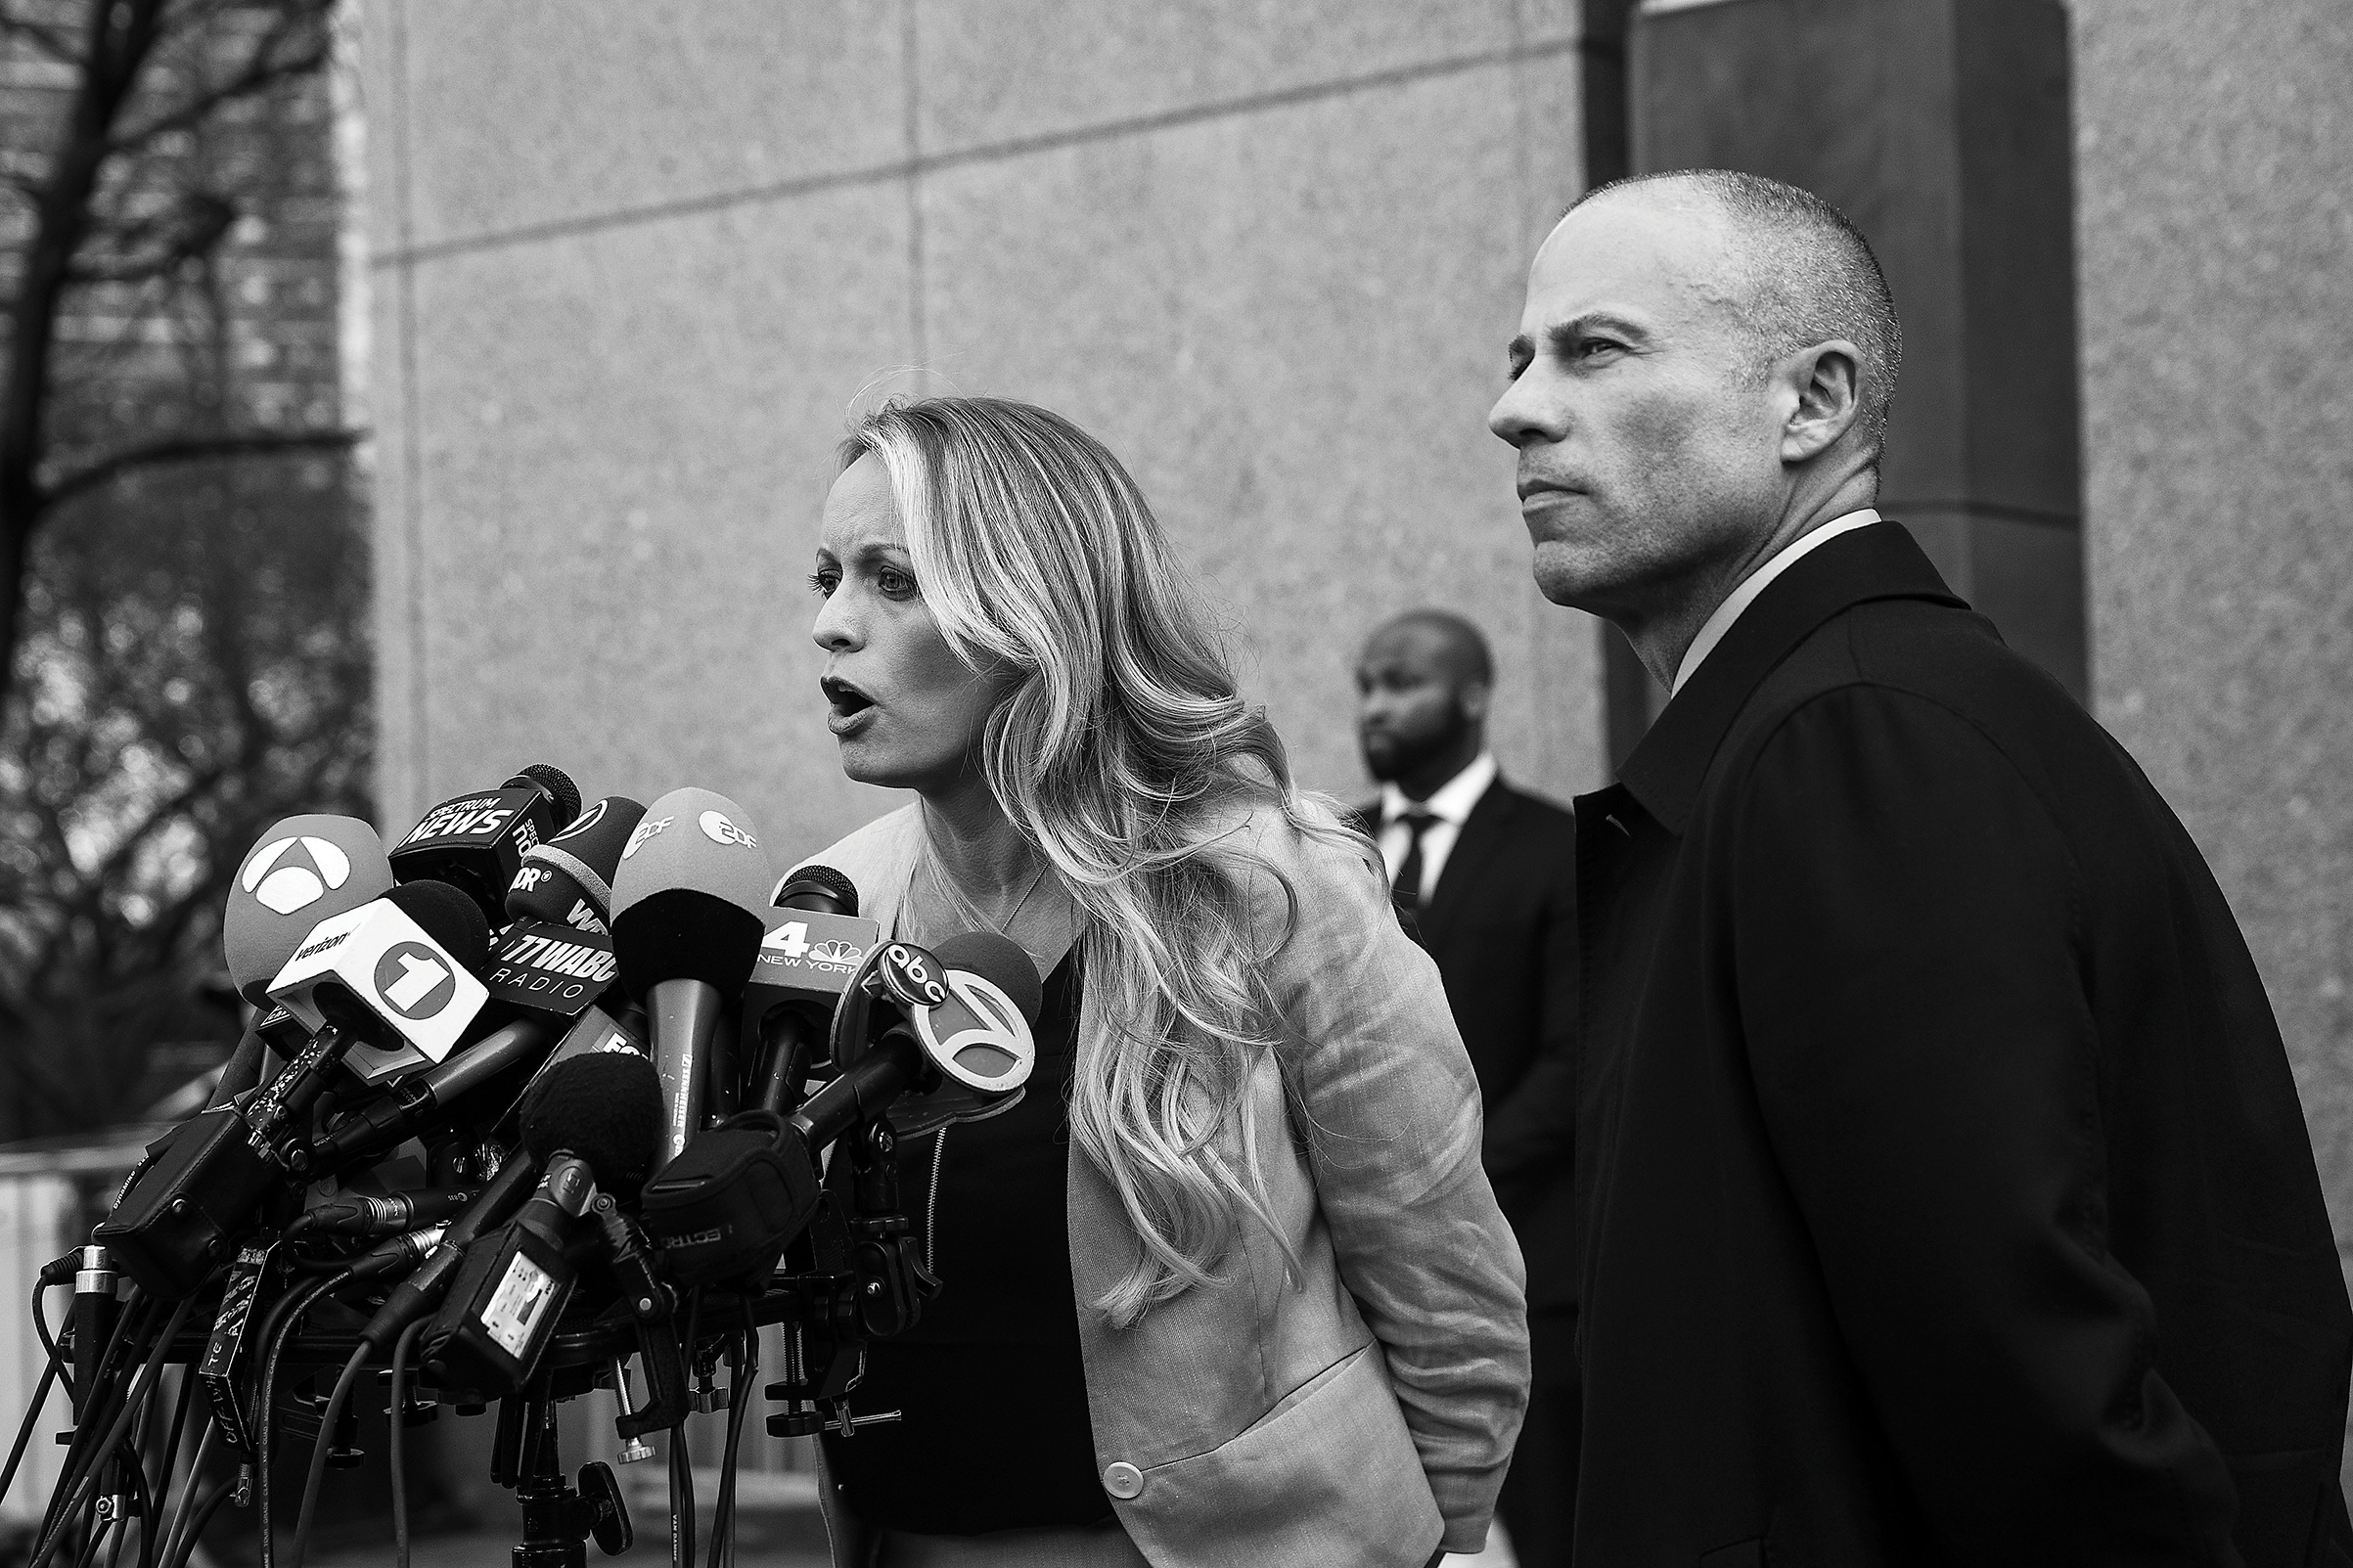 Avenatti first vaulted to fame for his work on behalf of Daniels